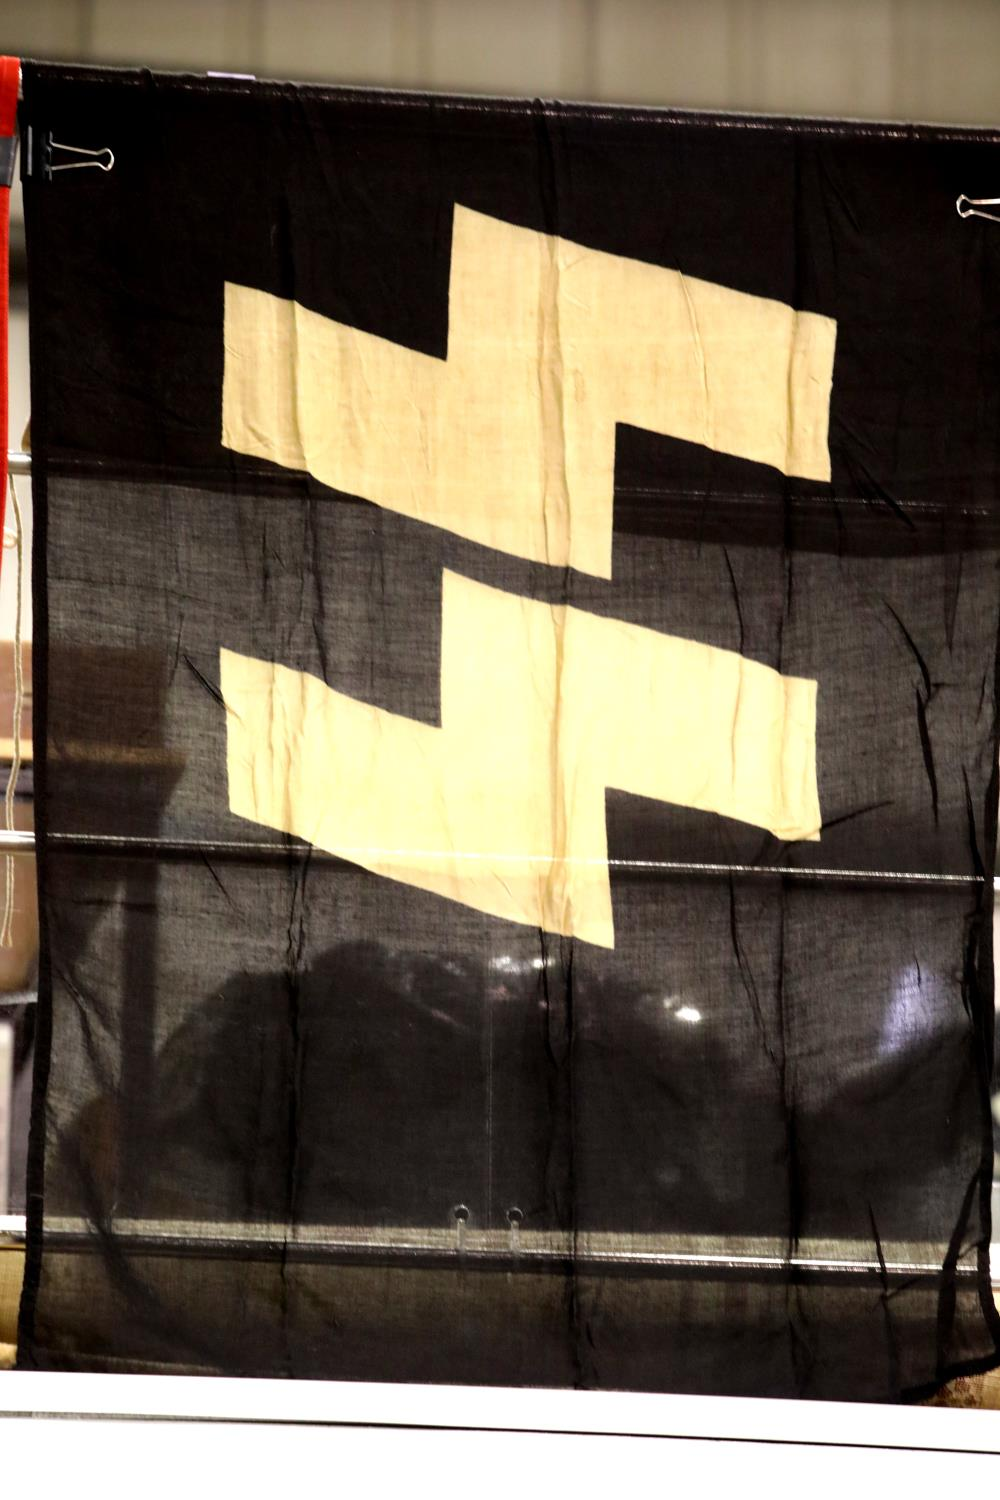 Lot 3009 - German WWII type SS flag, 150 x 90 cm. P&P Group 1 (£14+VAT for the first lot and £1+VAT for